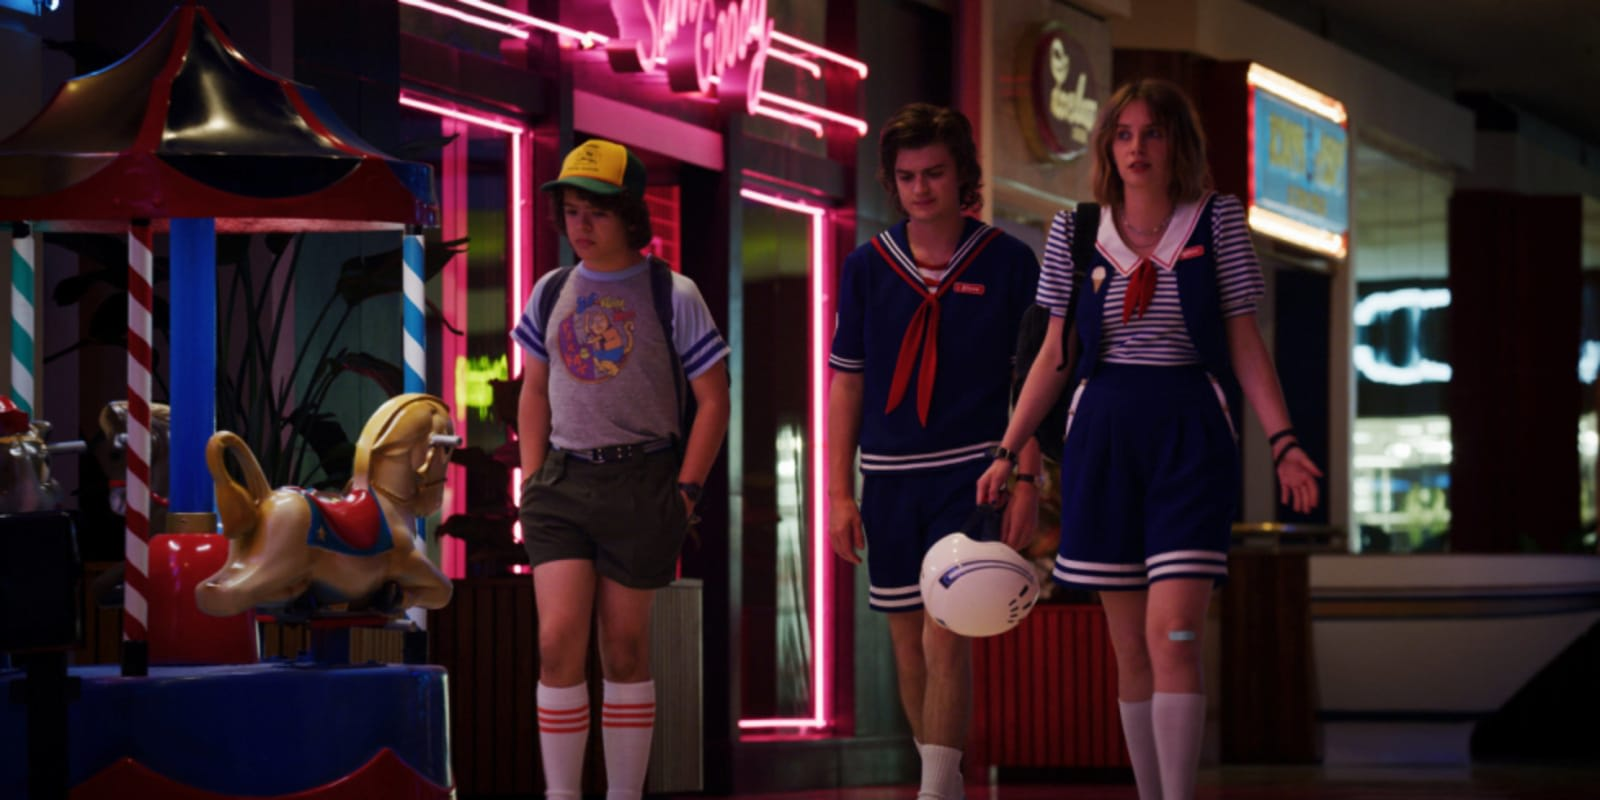 Stranger Things 3' has been seen by over 40 million Netflix